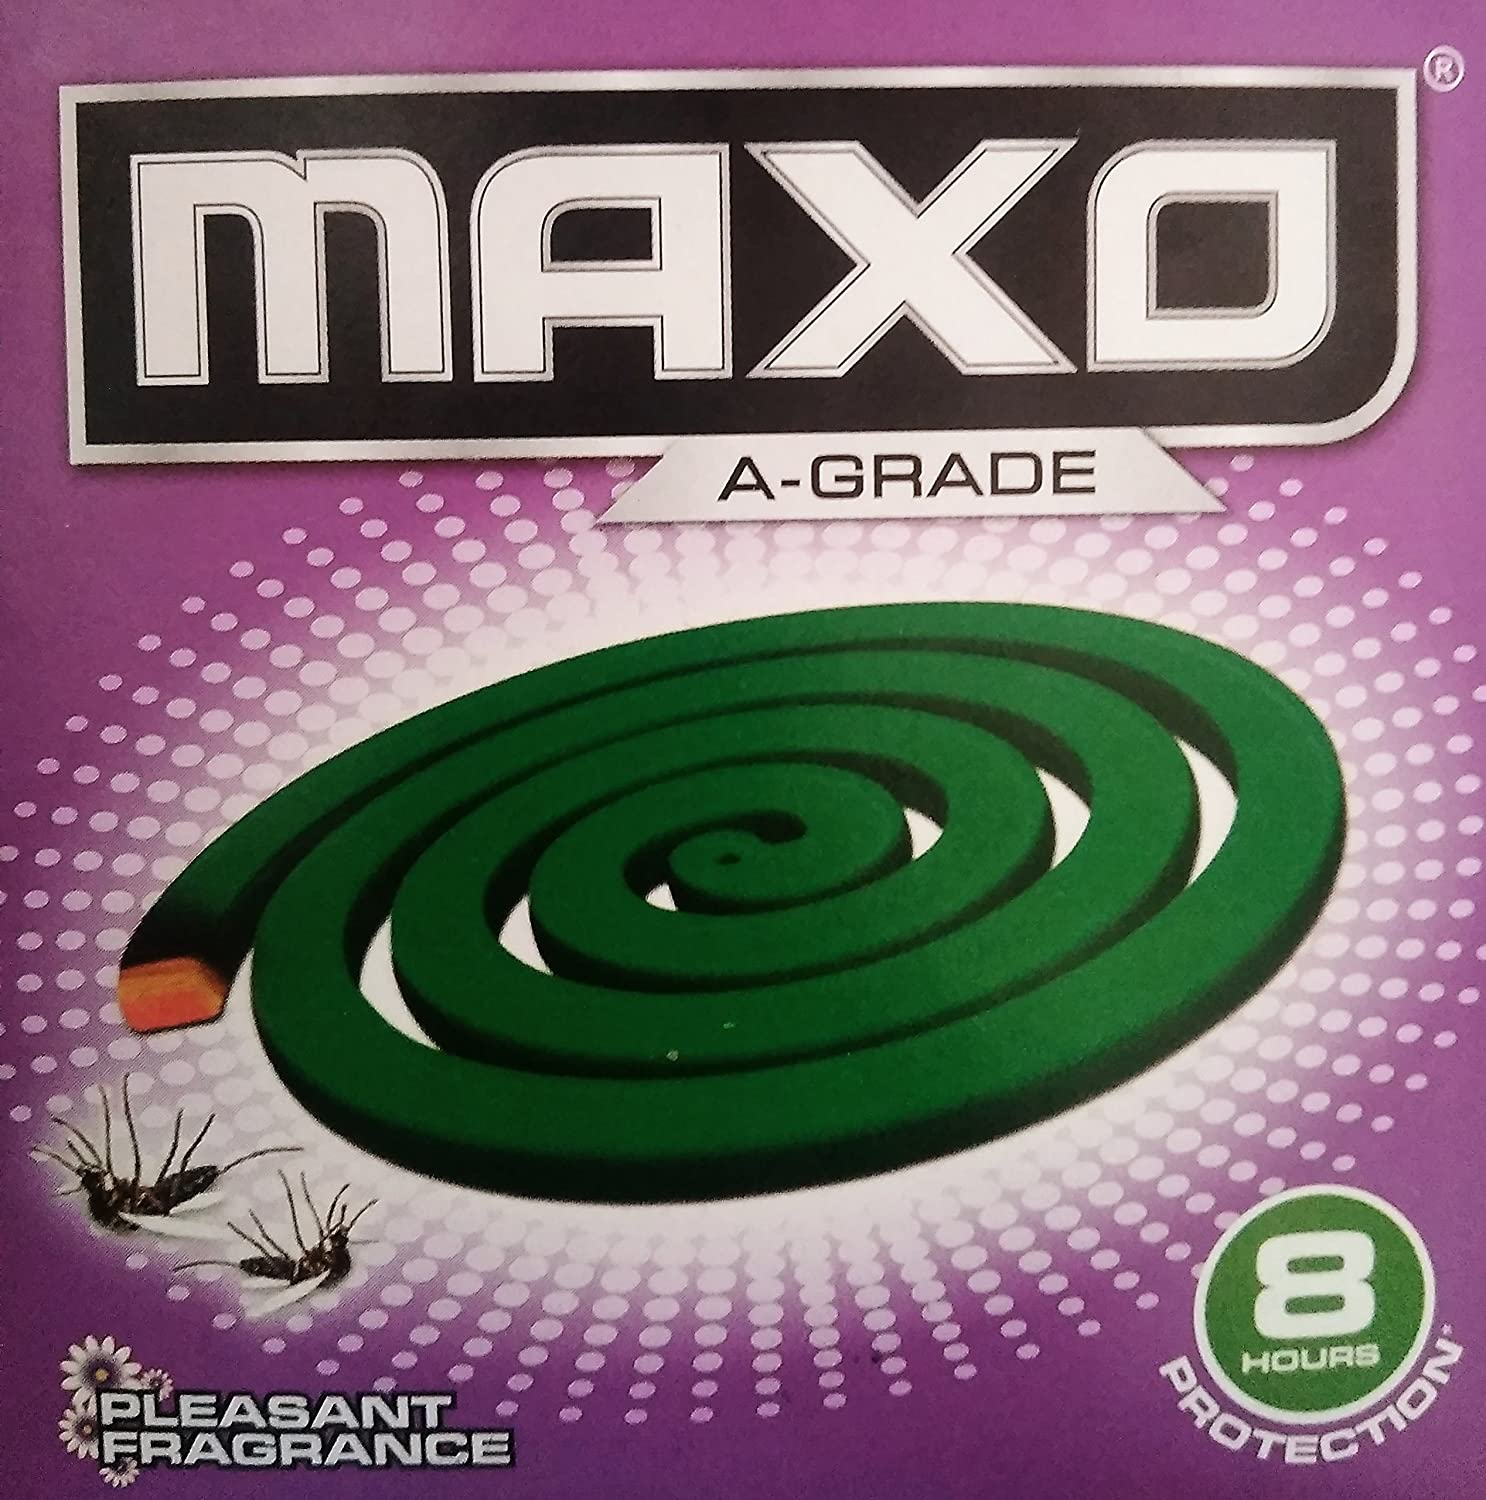 MAXO 8 HOUR PROTECTION COIL 27/-